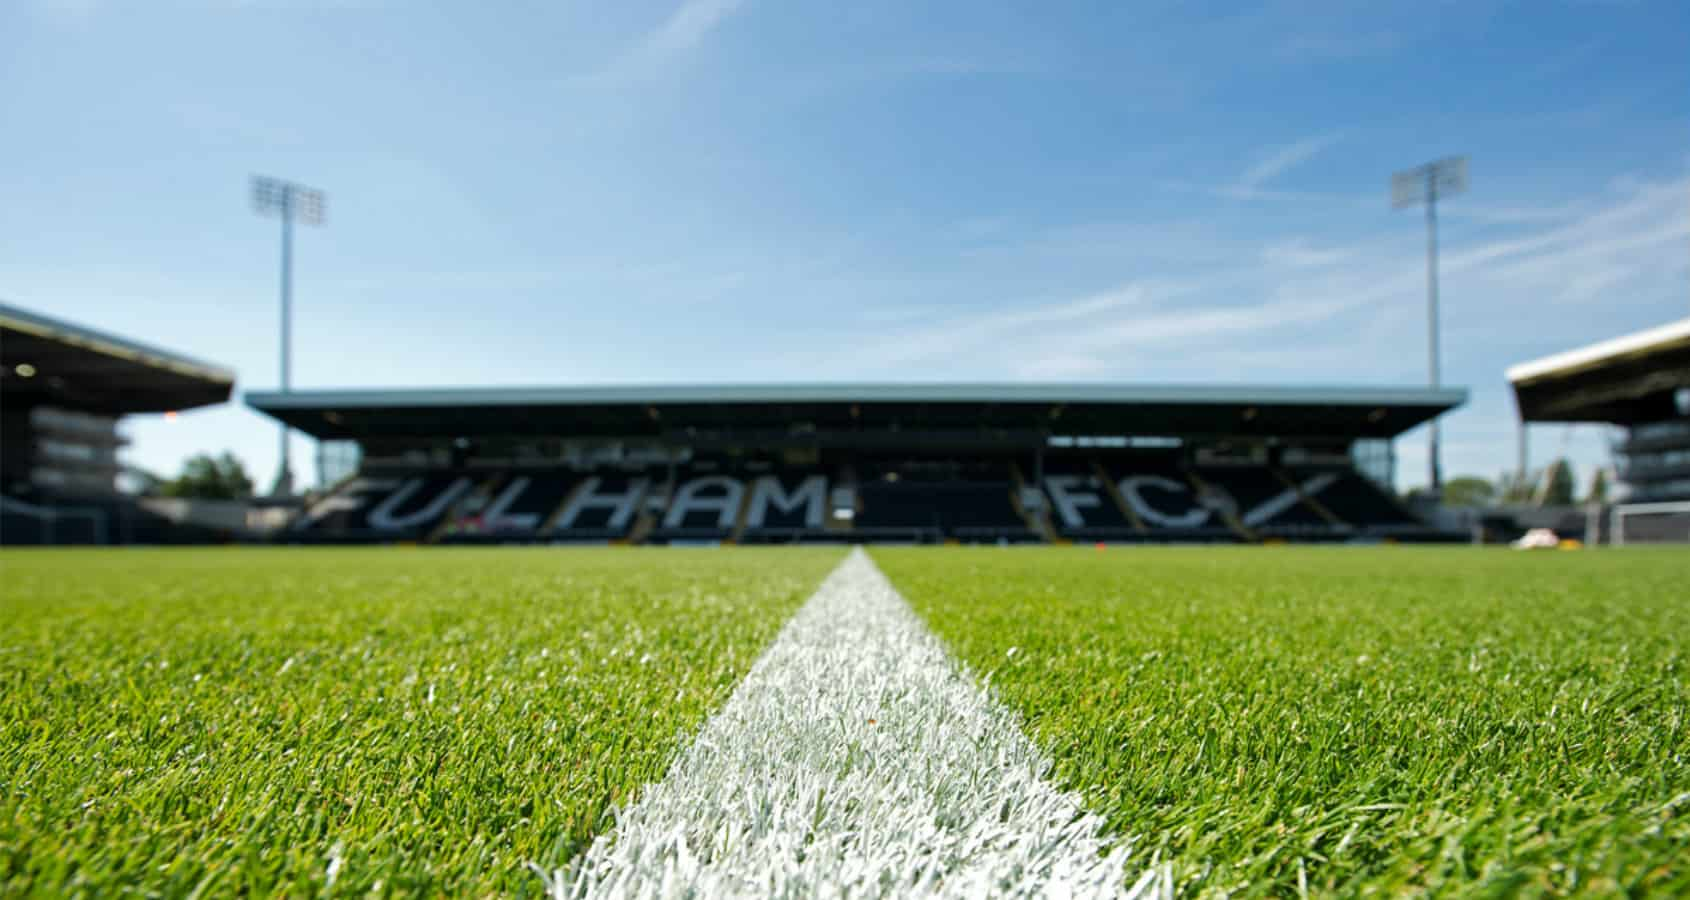 Fotbollsresa, London, England, Fulham FC, Craven Cottage